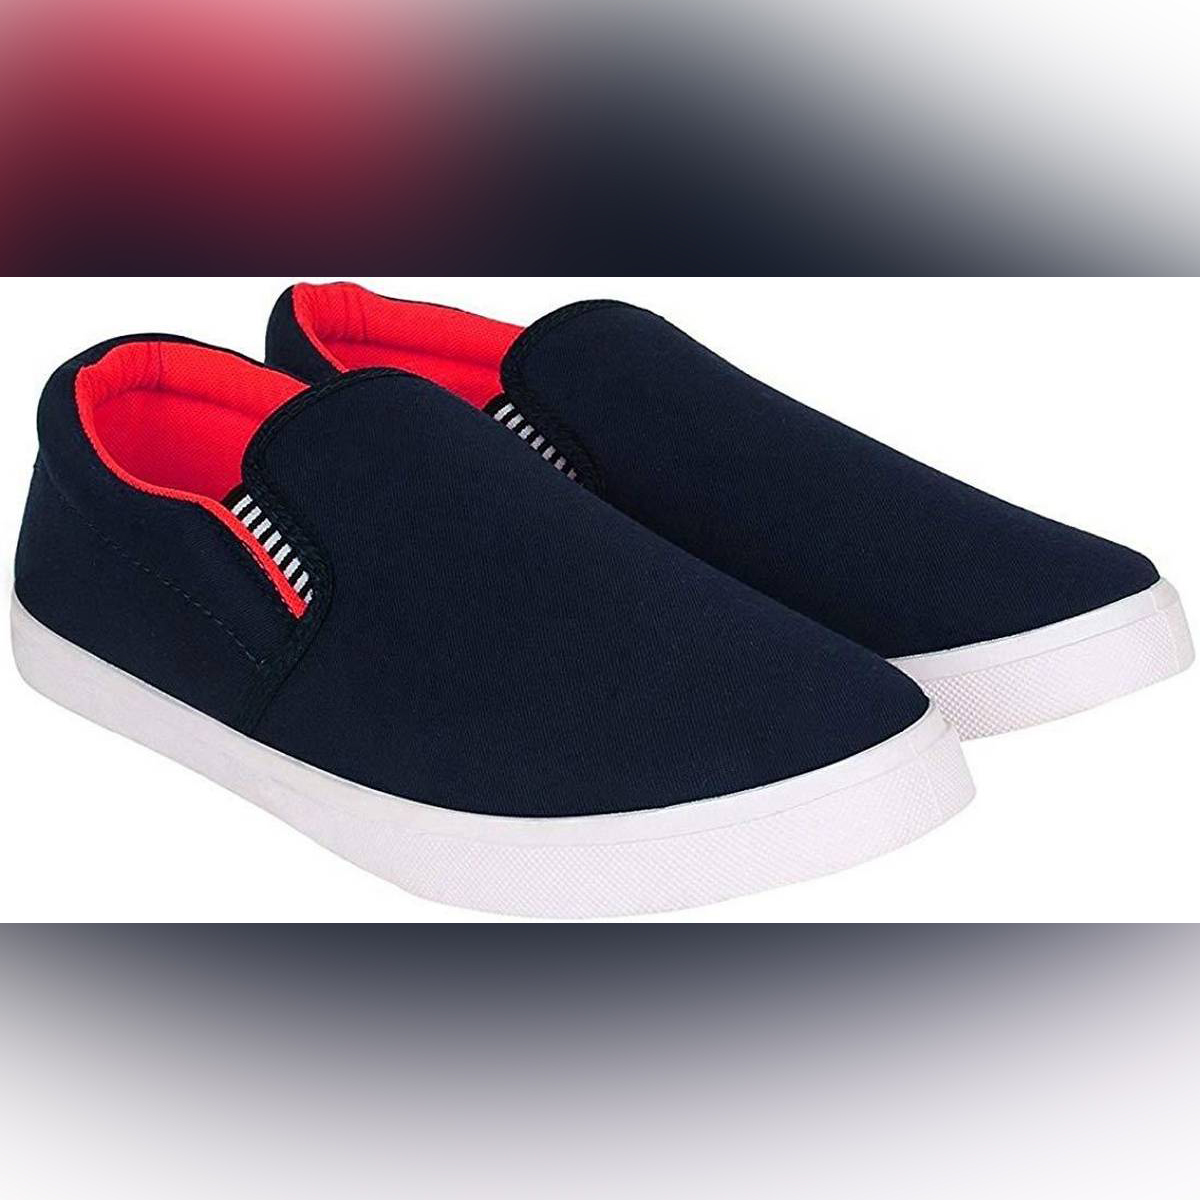 New Stylish Casual Jeans Shoes for Men